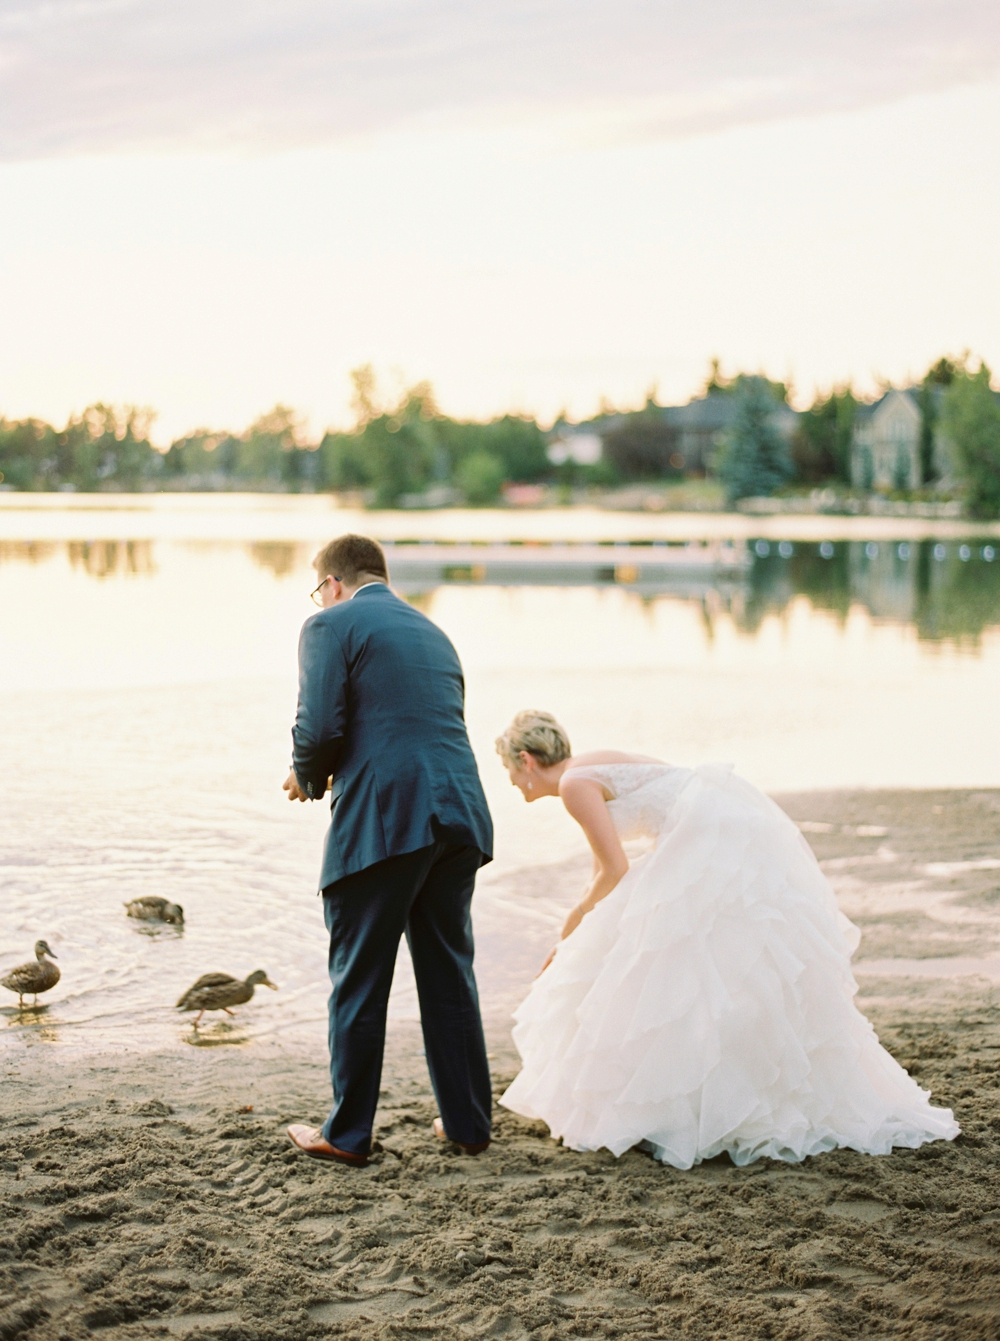 Calgary wedding photographers | The lake house wedding | The Lake House on Lake Bonavista Bride and groom photos with ducks | Justine Milton Photography